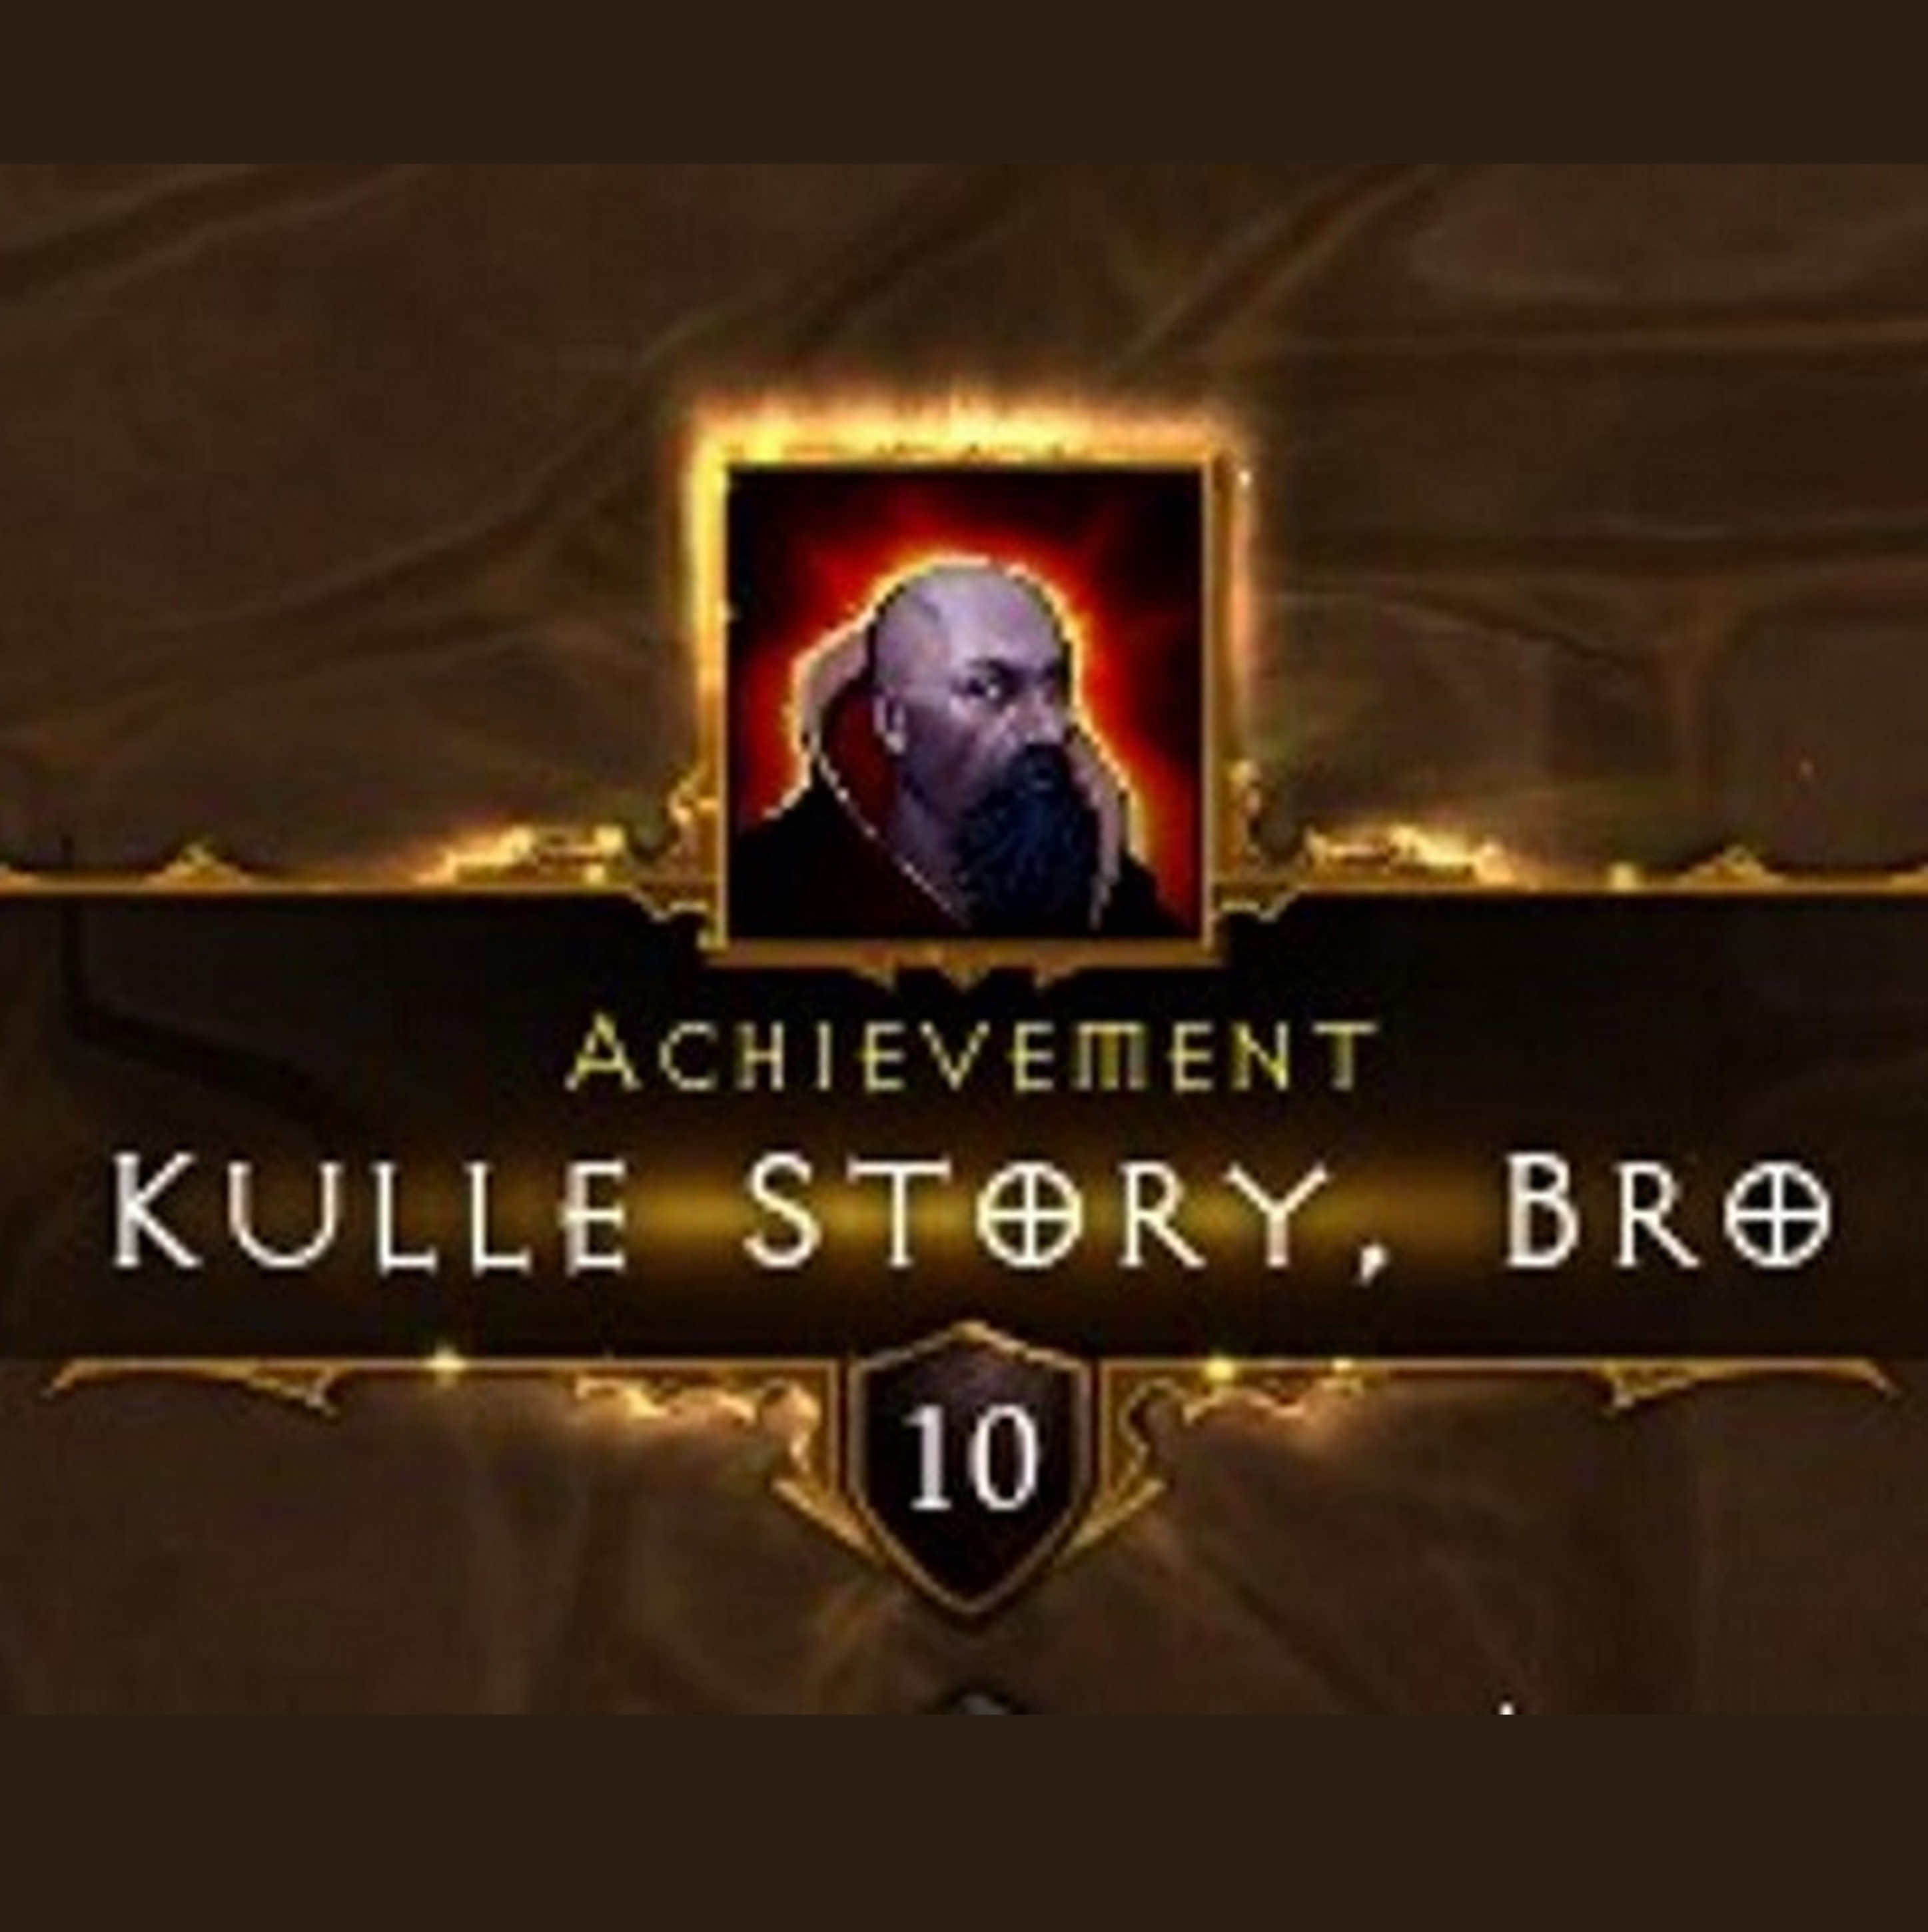 Kulle Story Bro - A Diablo 3 Podcast Episode 12